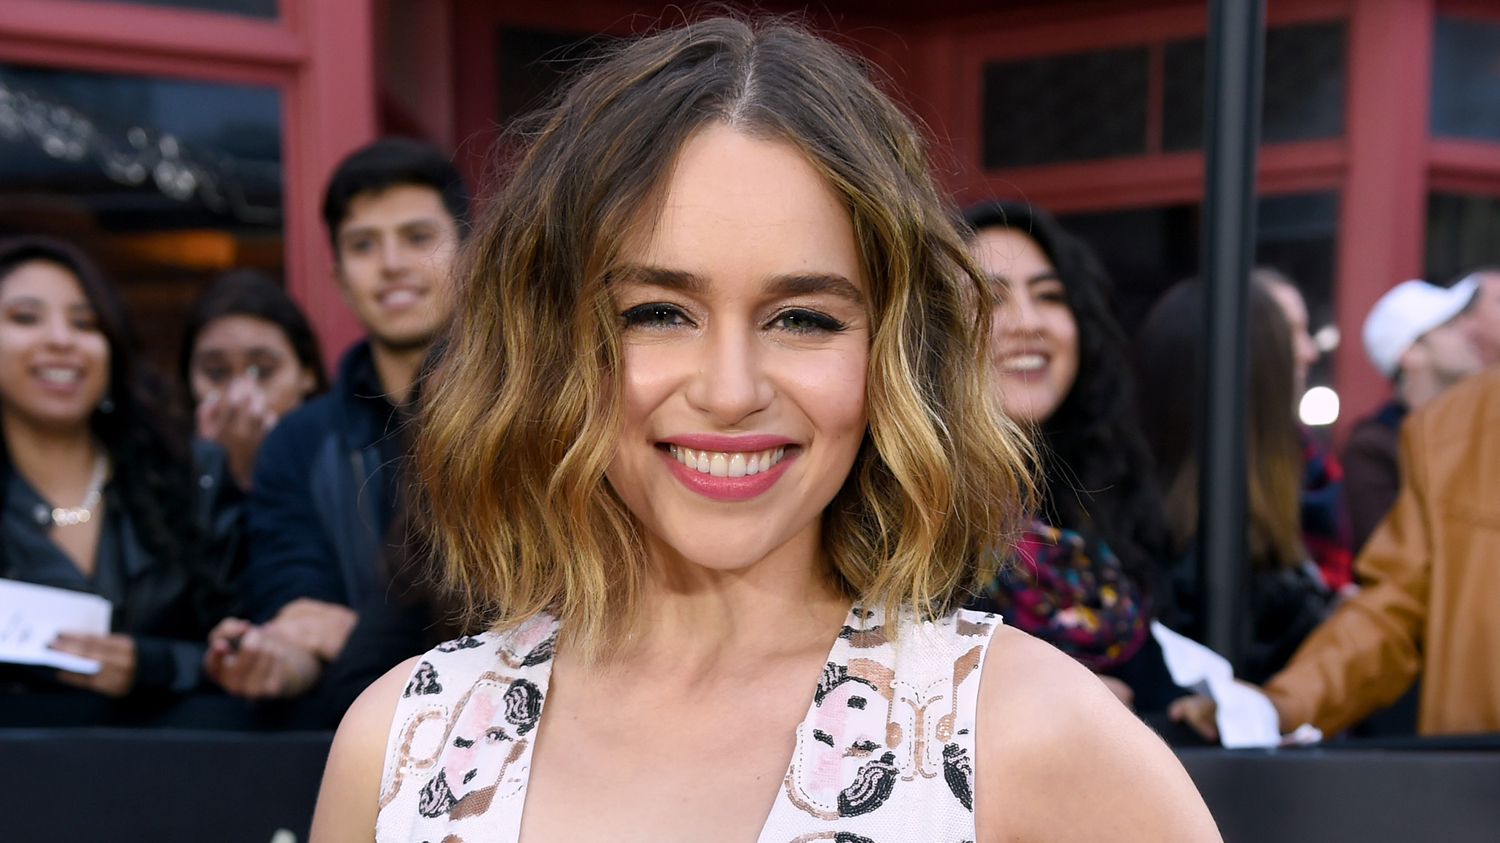 Emilia Clarke Says Her Ideal Man Has A Dad Bod recommend